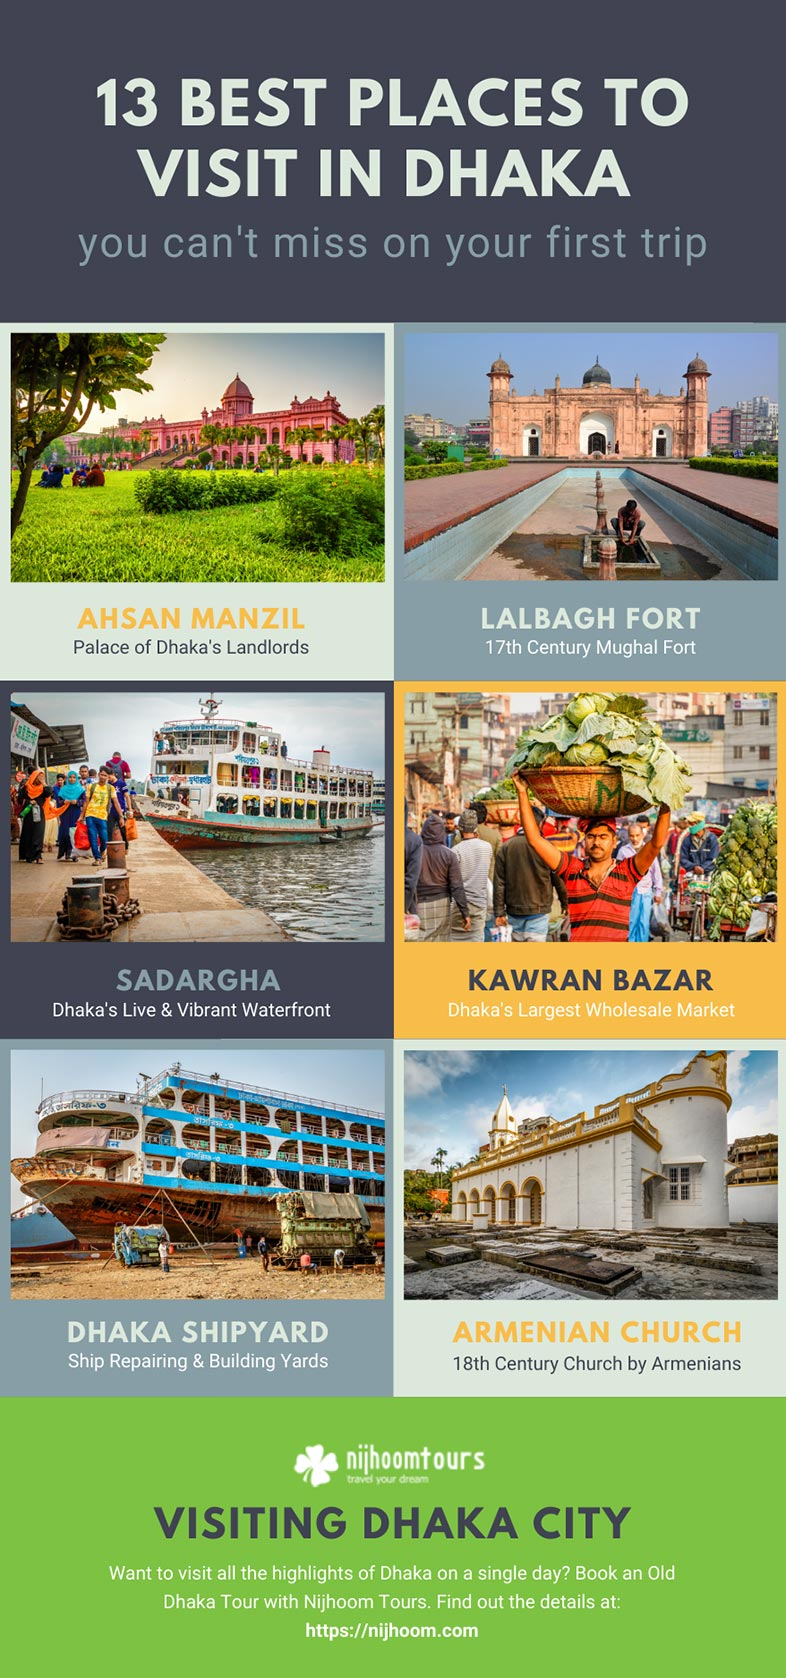 An infographic on 13 best places to visit in Dhaka you can't miss on your frirst trip